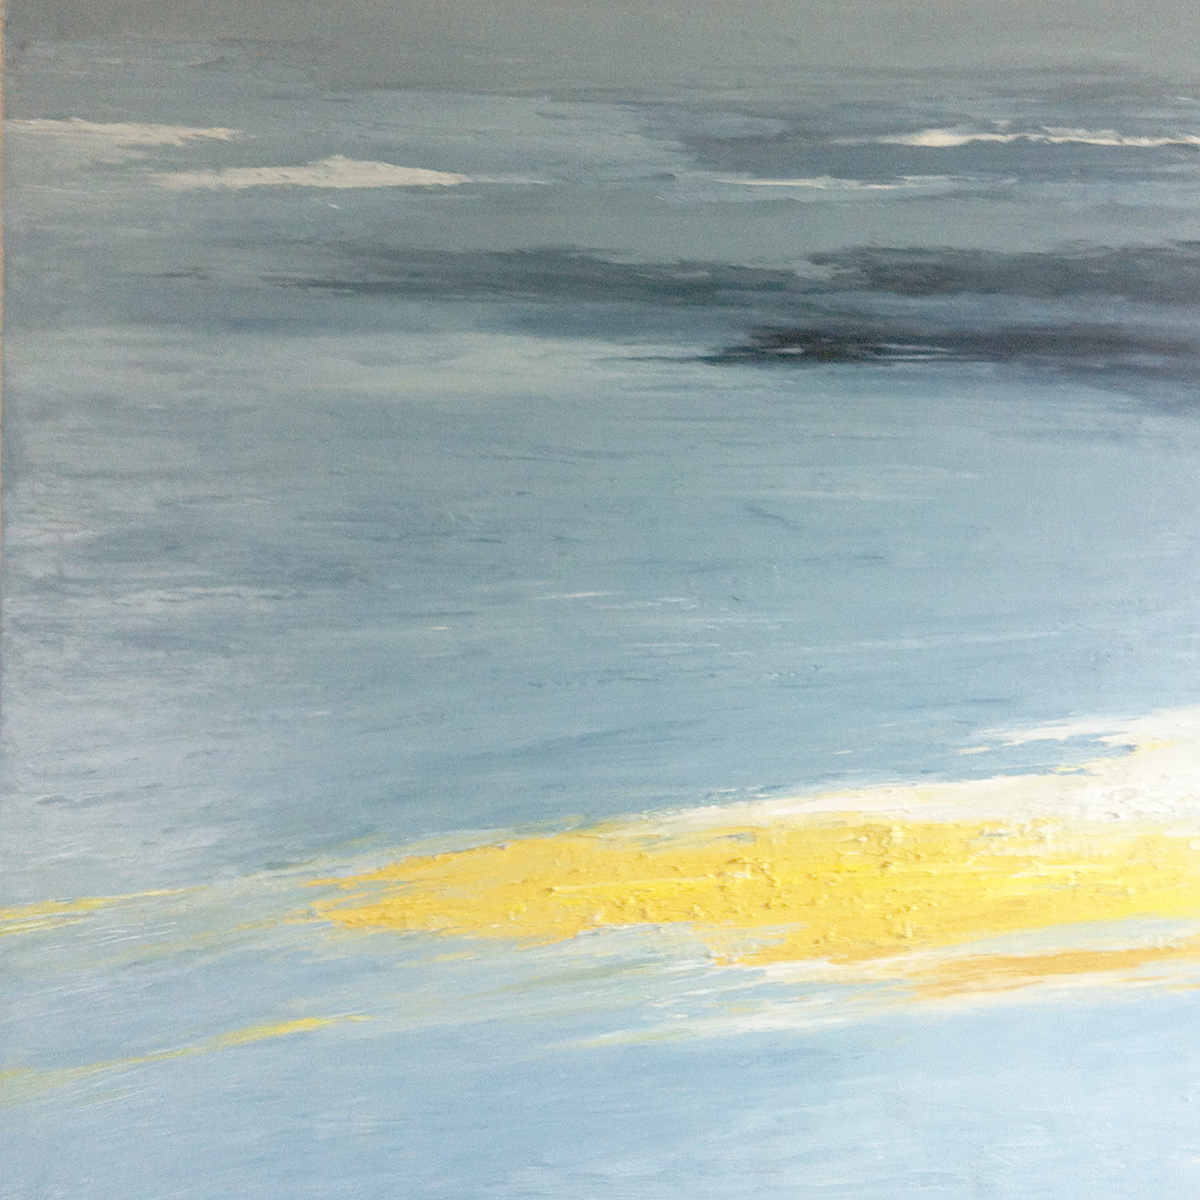 At The Horizon - archipelago, oil on canvas, 42 by 42 inches, 2012, $5000